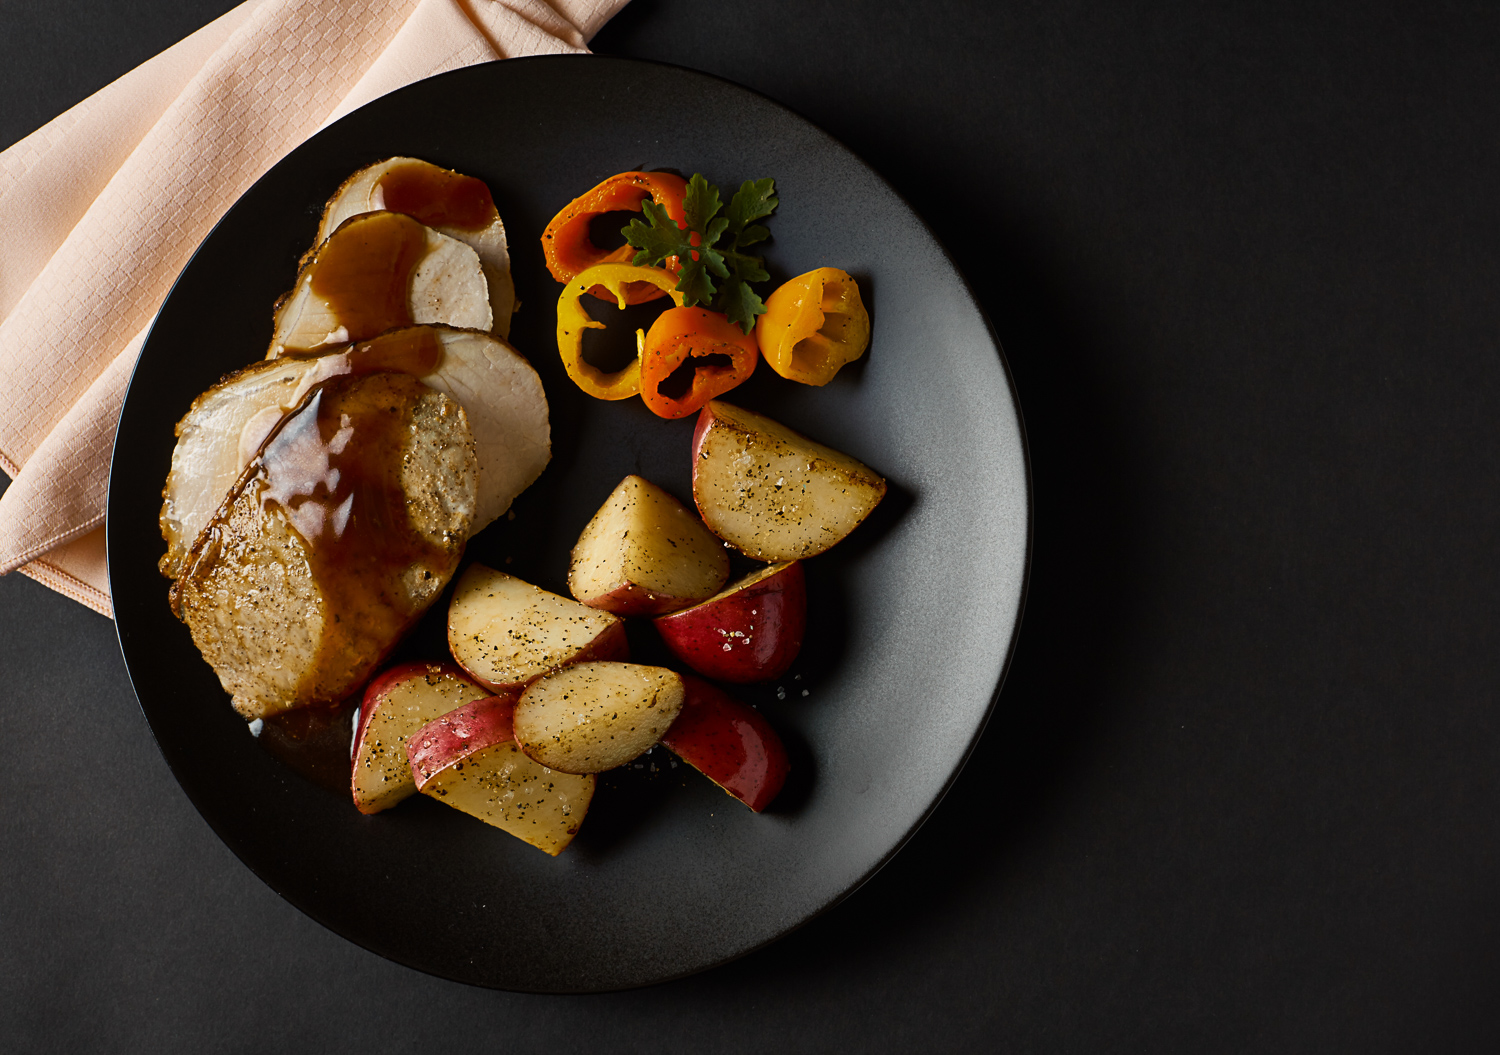 meat and potatoes on a plate